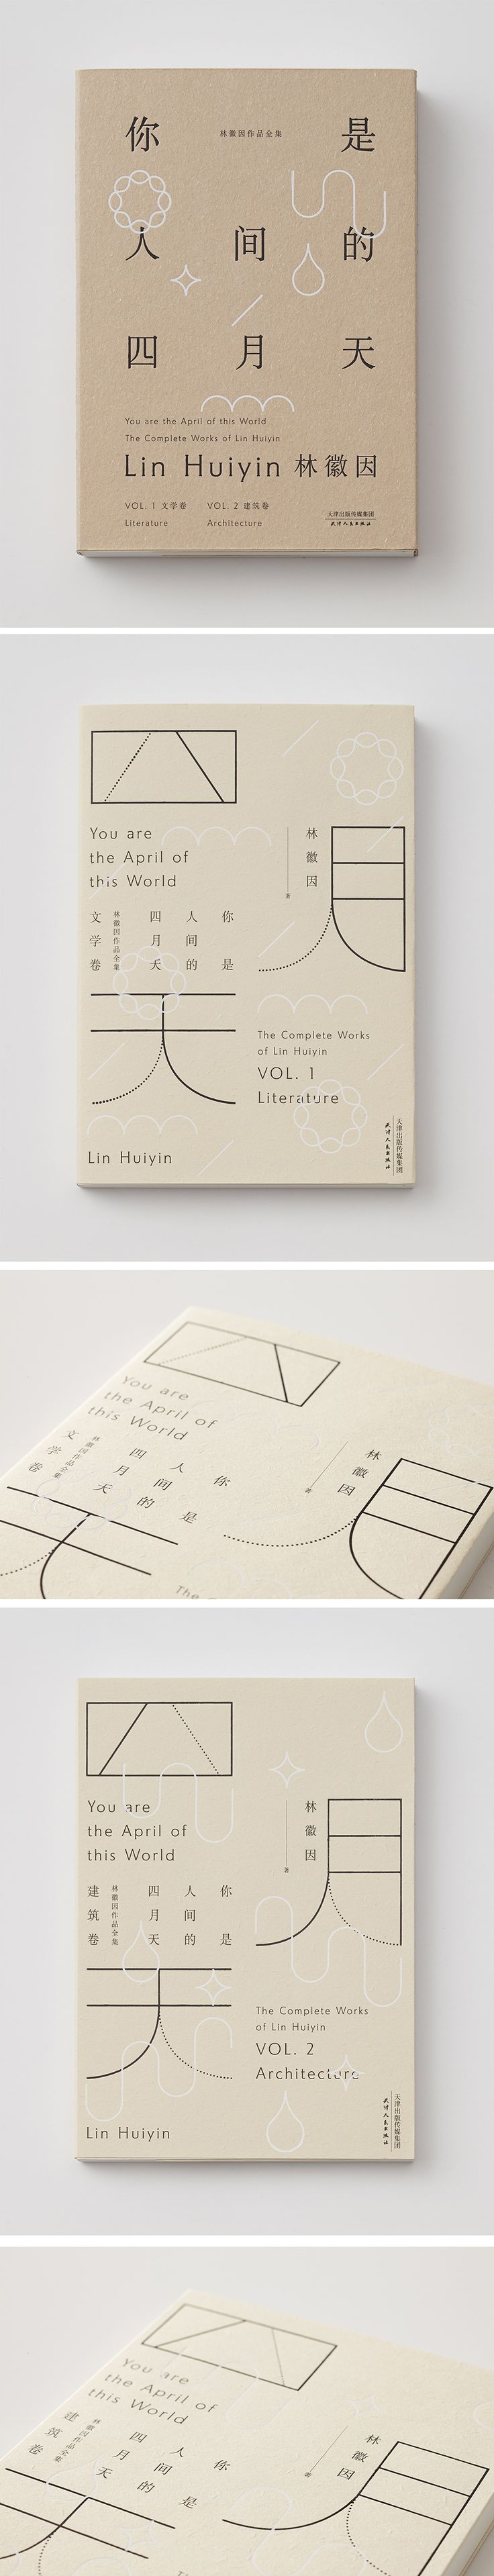 Beautiful book design.